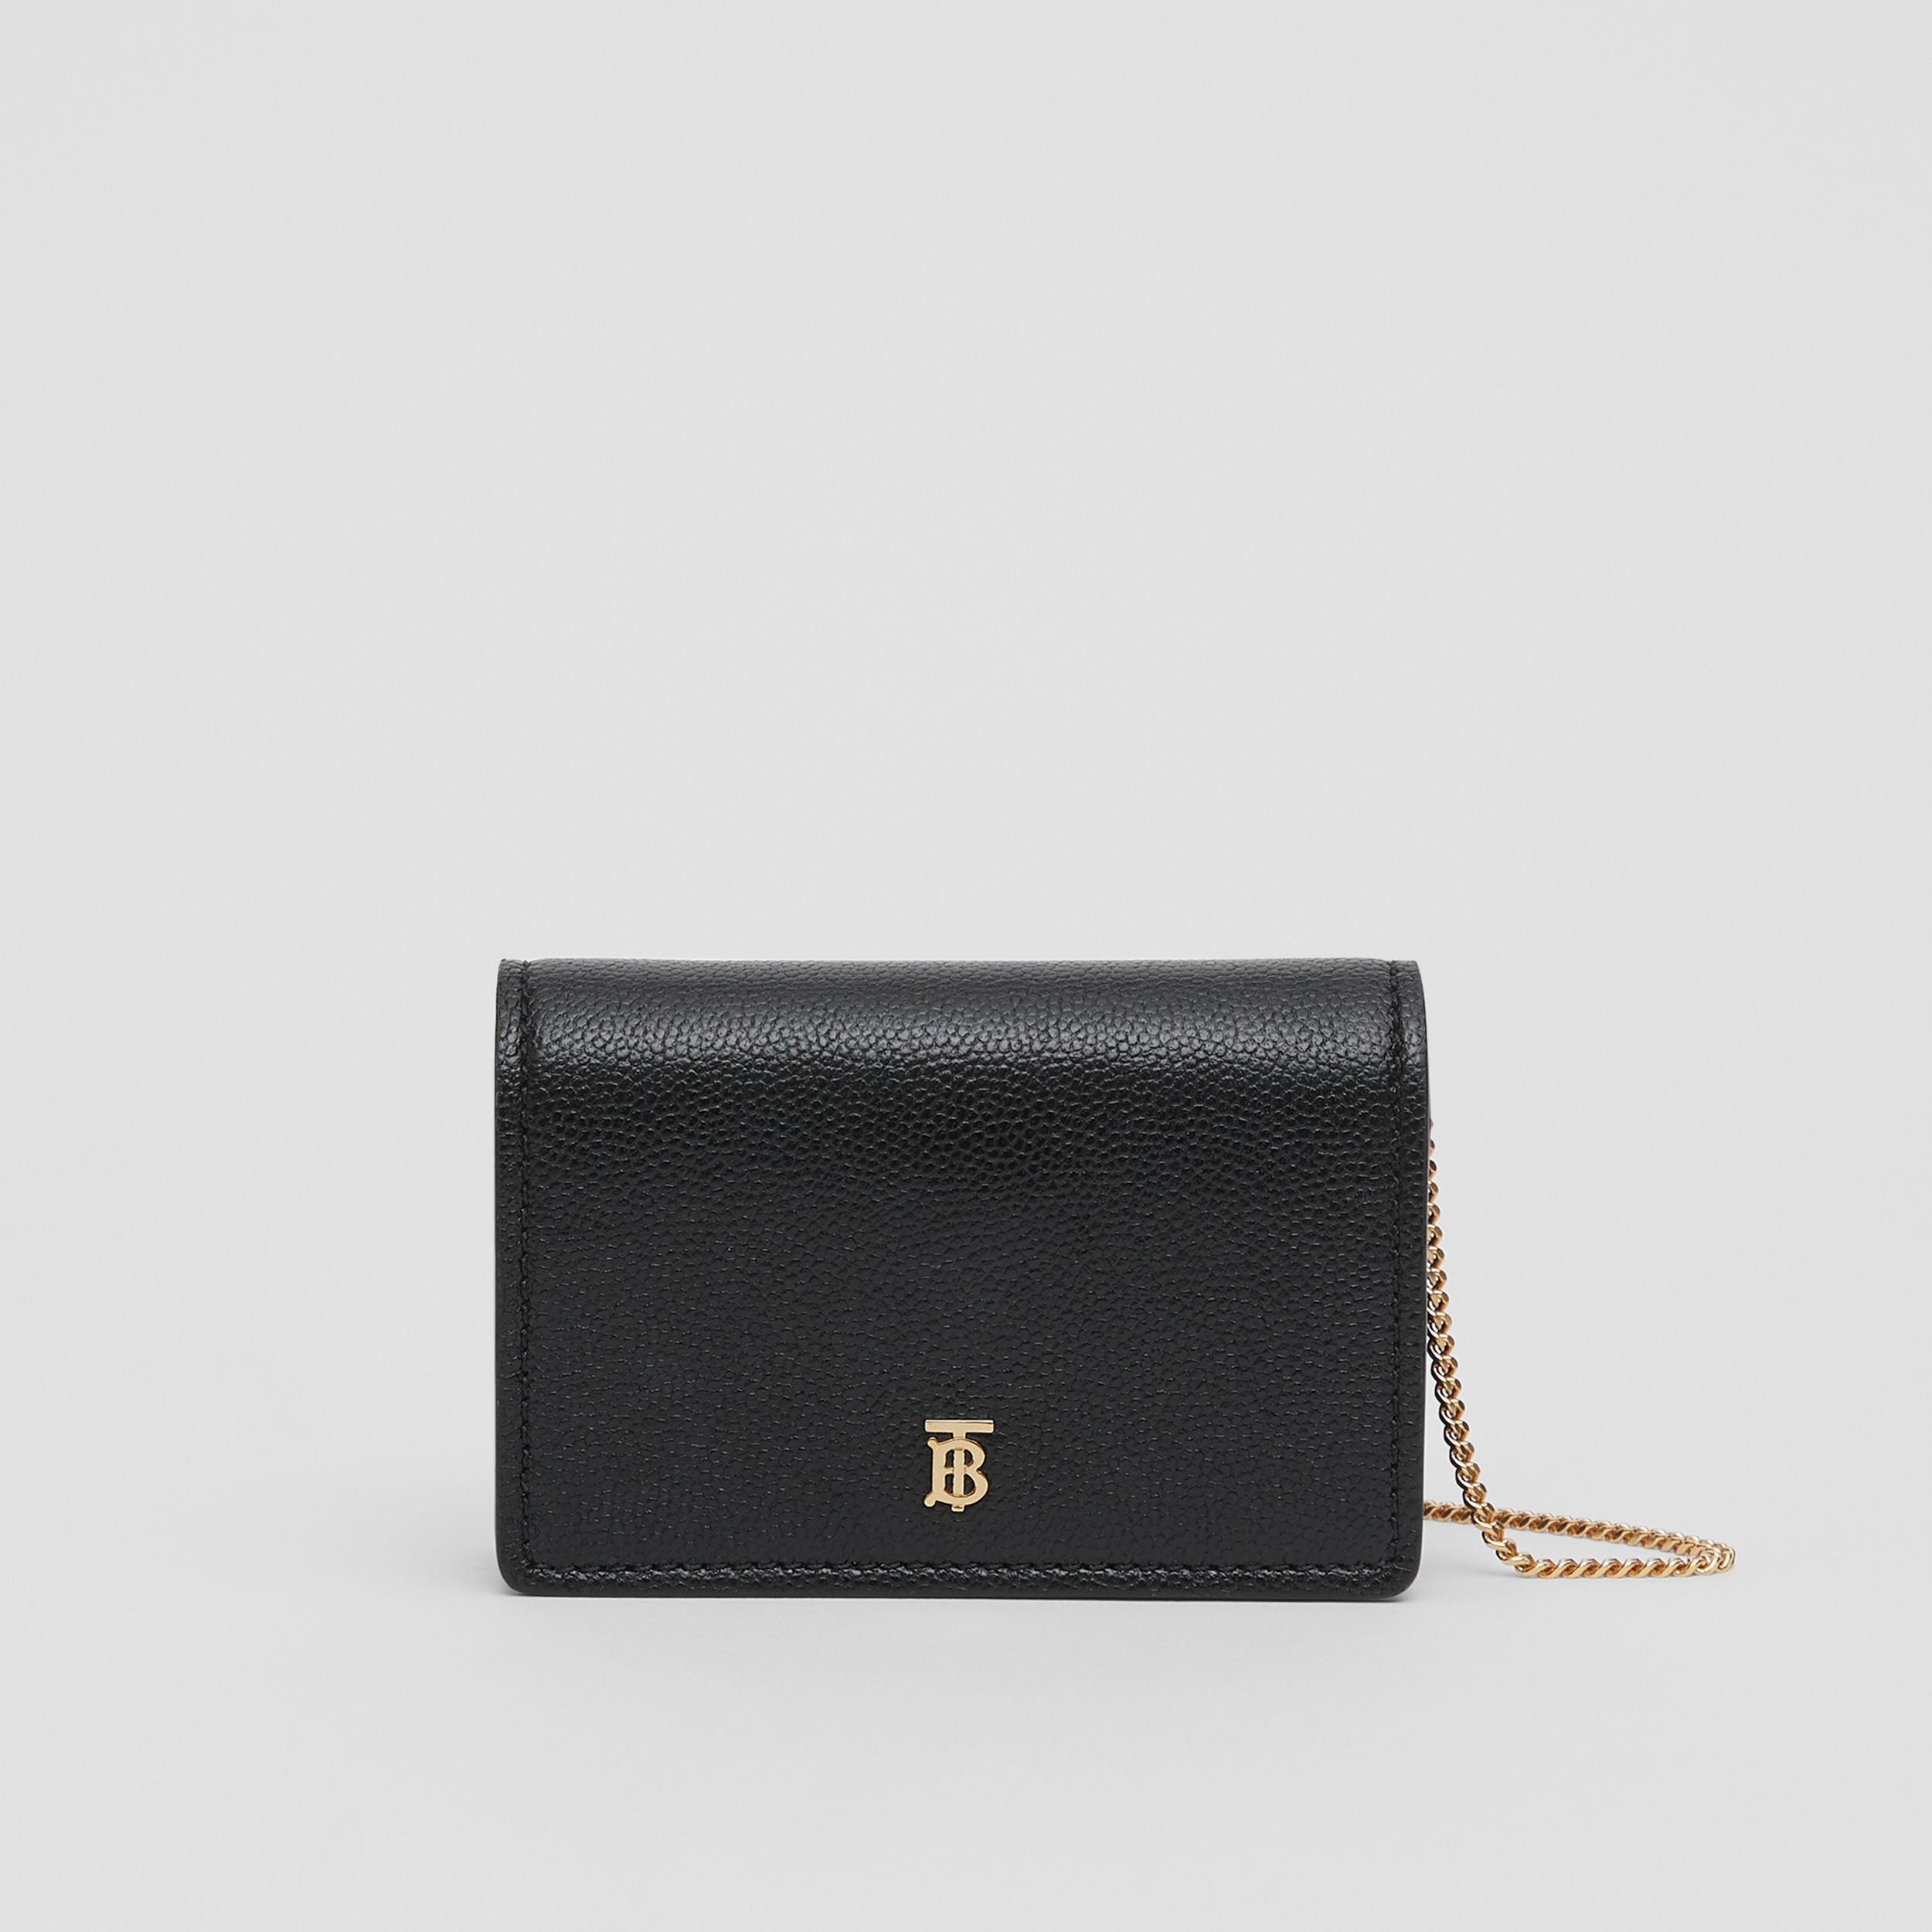 Grainy Leather Card Case with Detachable Strap in Black - Women | Burberry Australia - 1